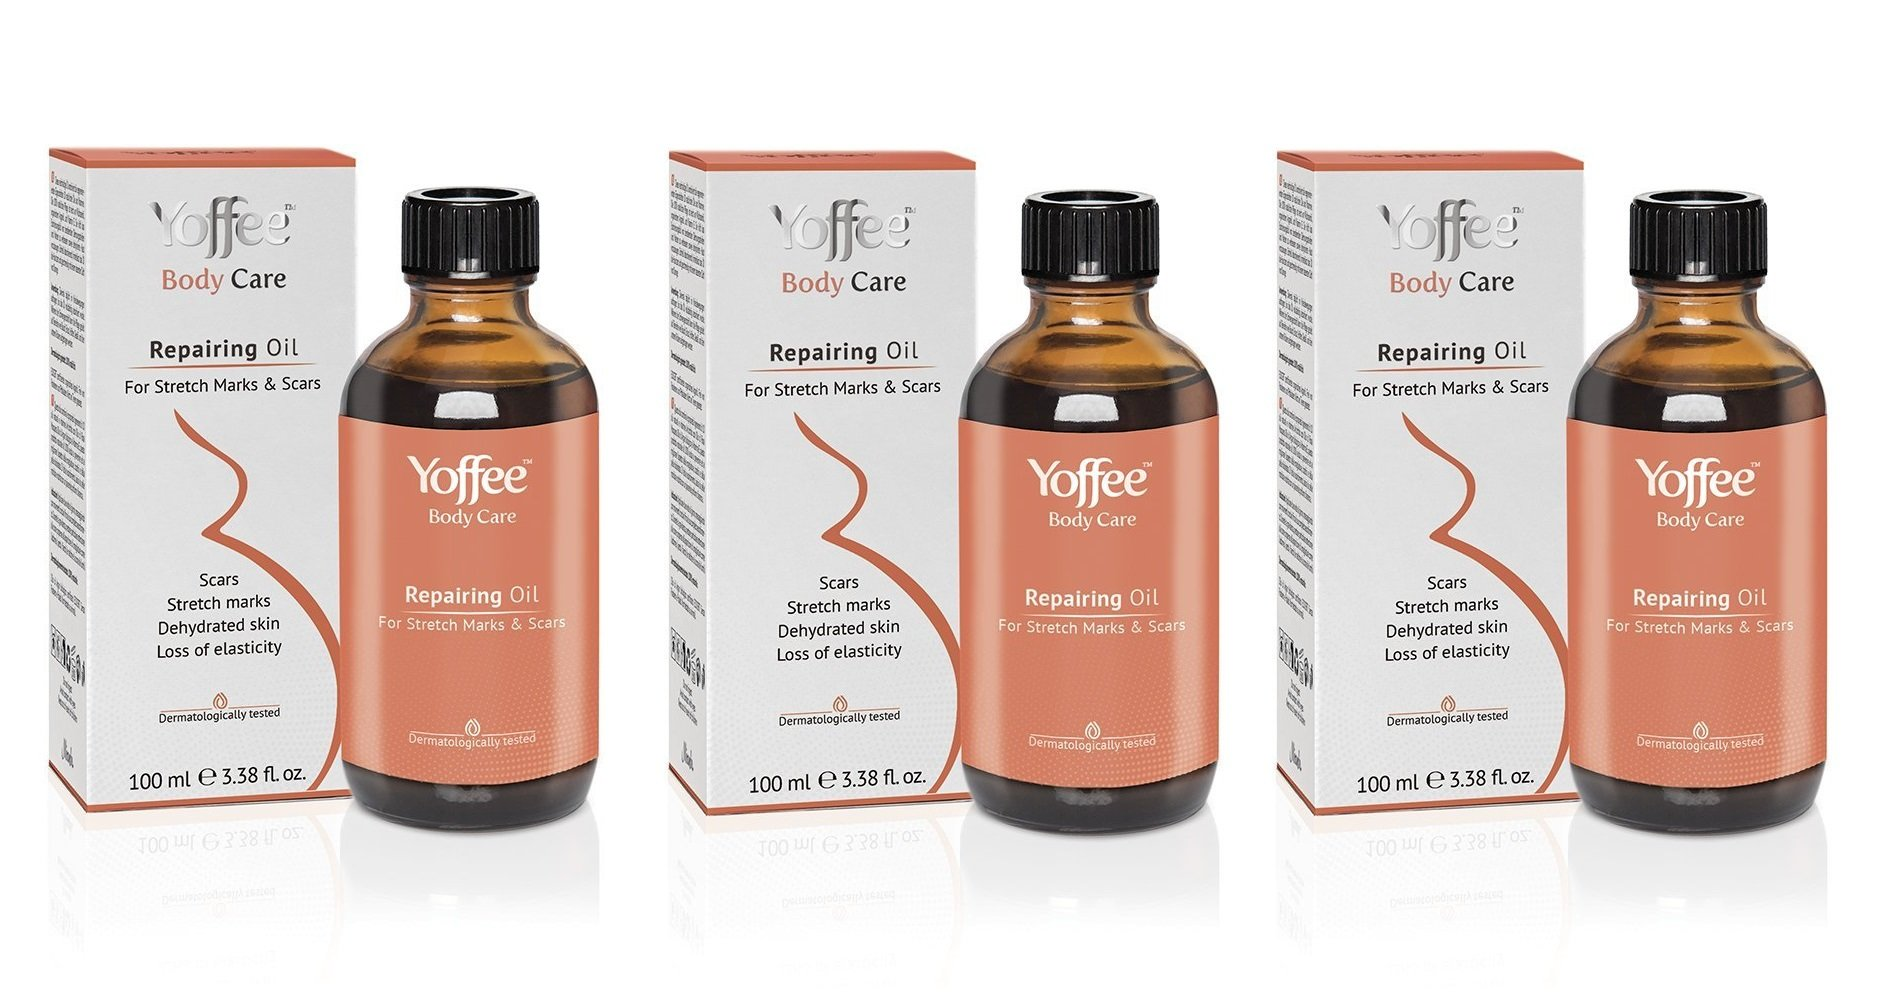 Yoffee Repairing Oil for Stretch Marks & Scars - 100% Natural Plant Oils to Reduce, Prevent & Fade Stretch Marks and Scars - for Men & Women Safe for Pregnant Women 100 ml/3.38 fl.oz (Pack of 3)